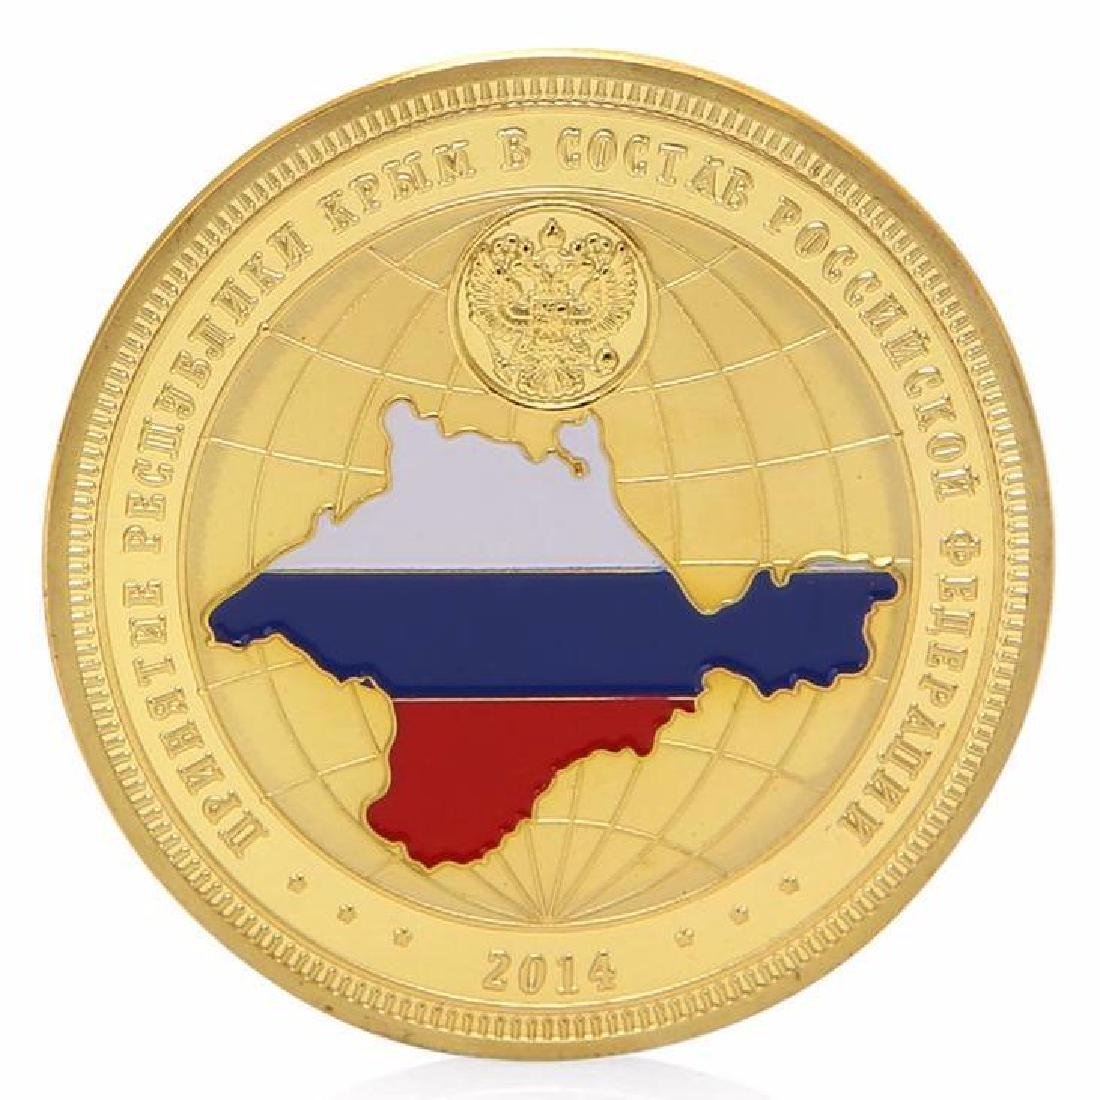 Crimea Russia Vladimir Putin Commemorative Coin - 2